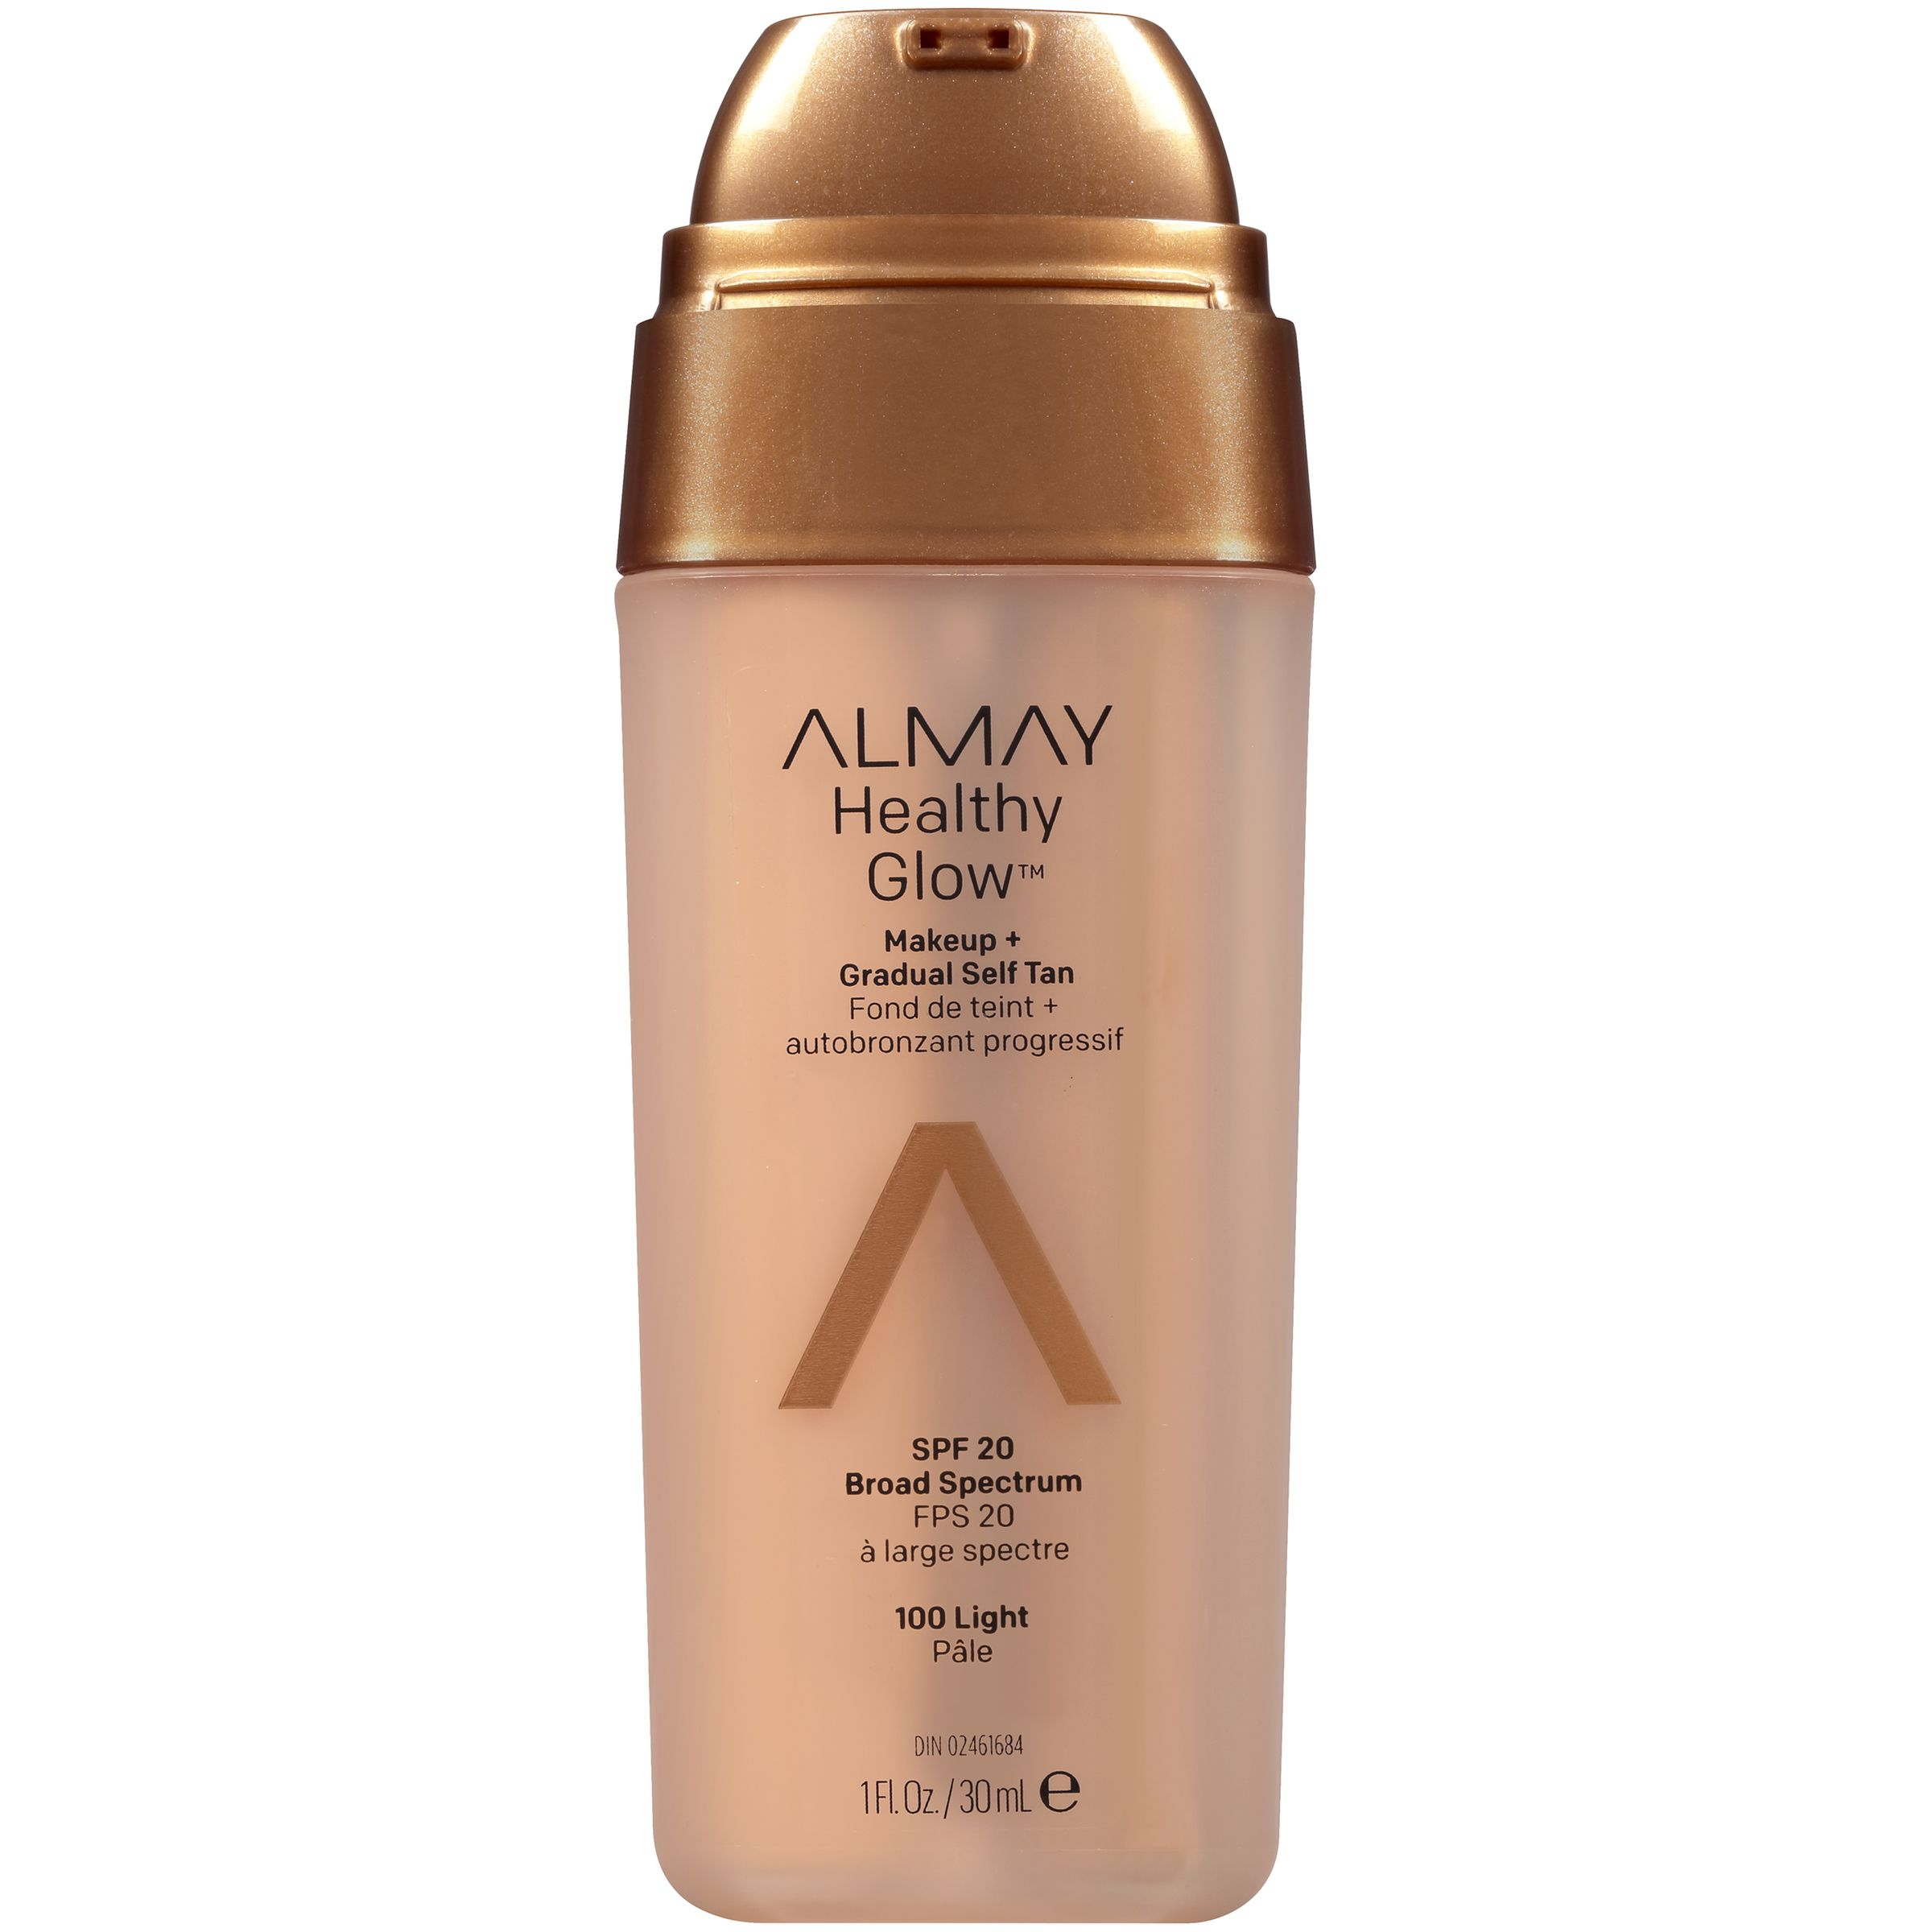 bc8400ca29f The 7 Best Drugstore Self-Tanners of 2019